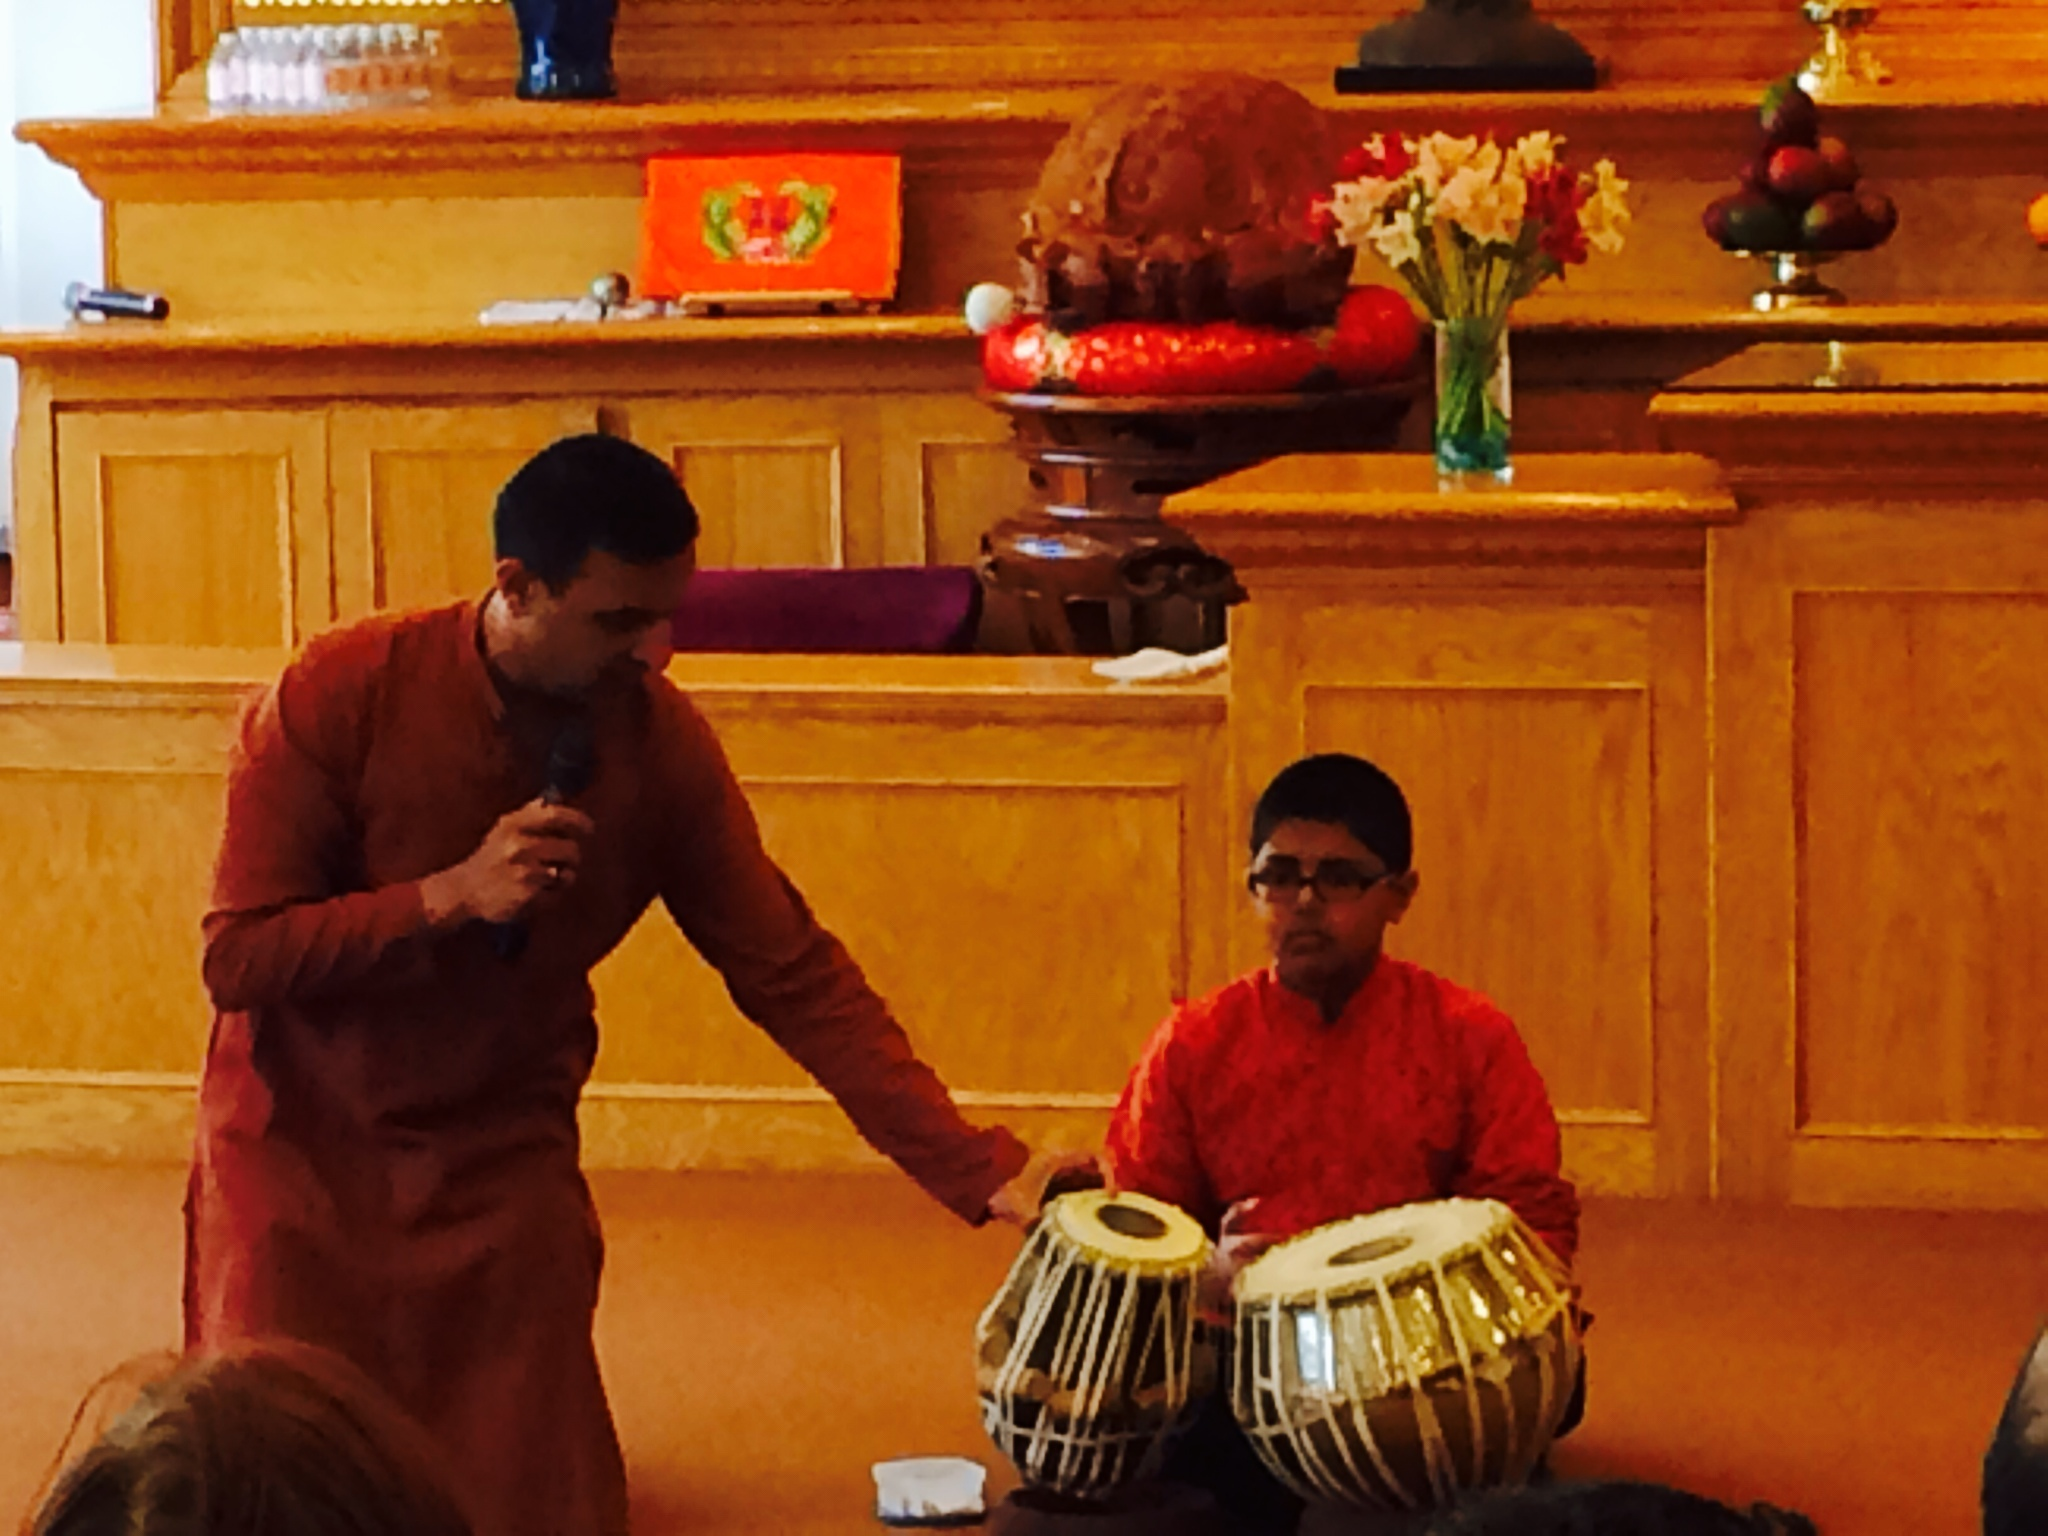 c9aa94285b6dffc0a13d_buddhist_with_drums.jpg